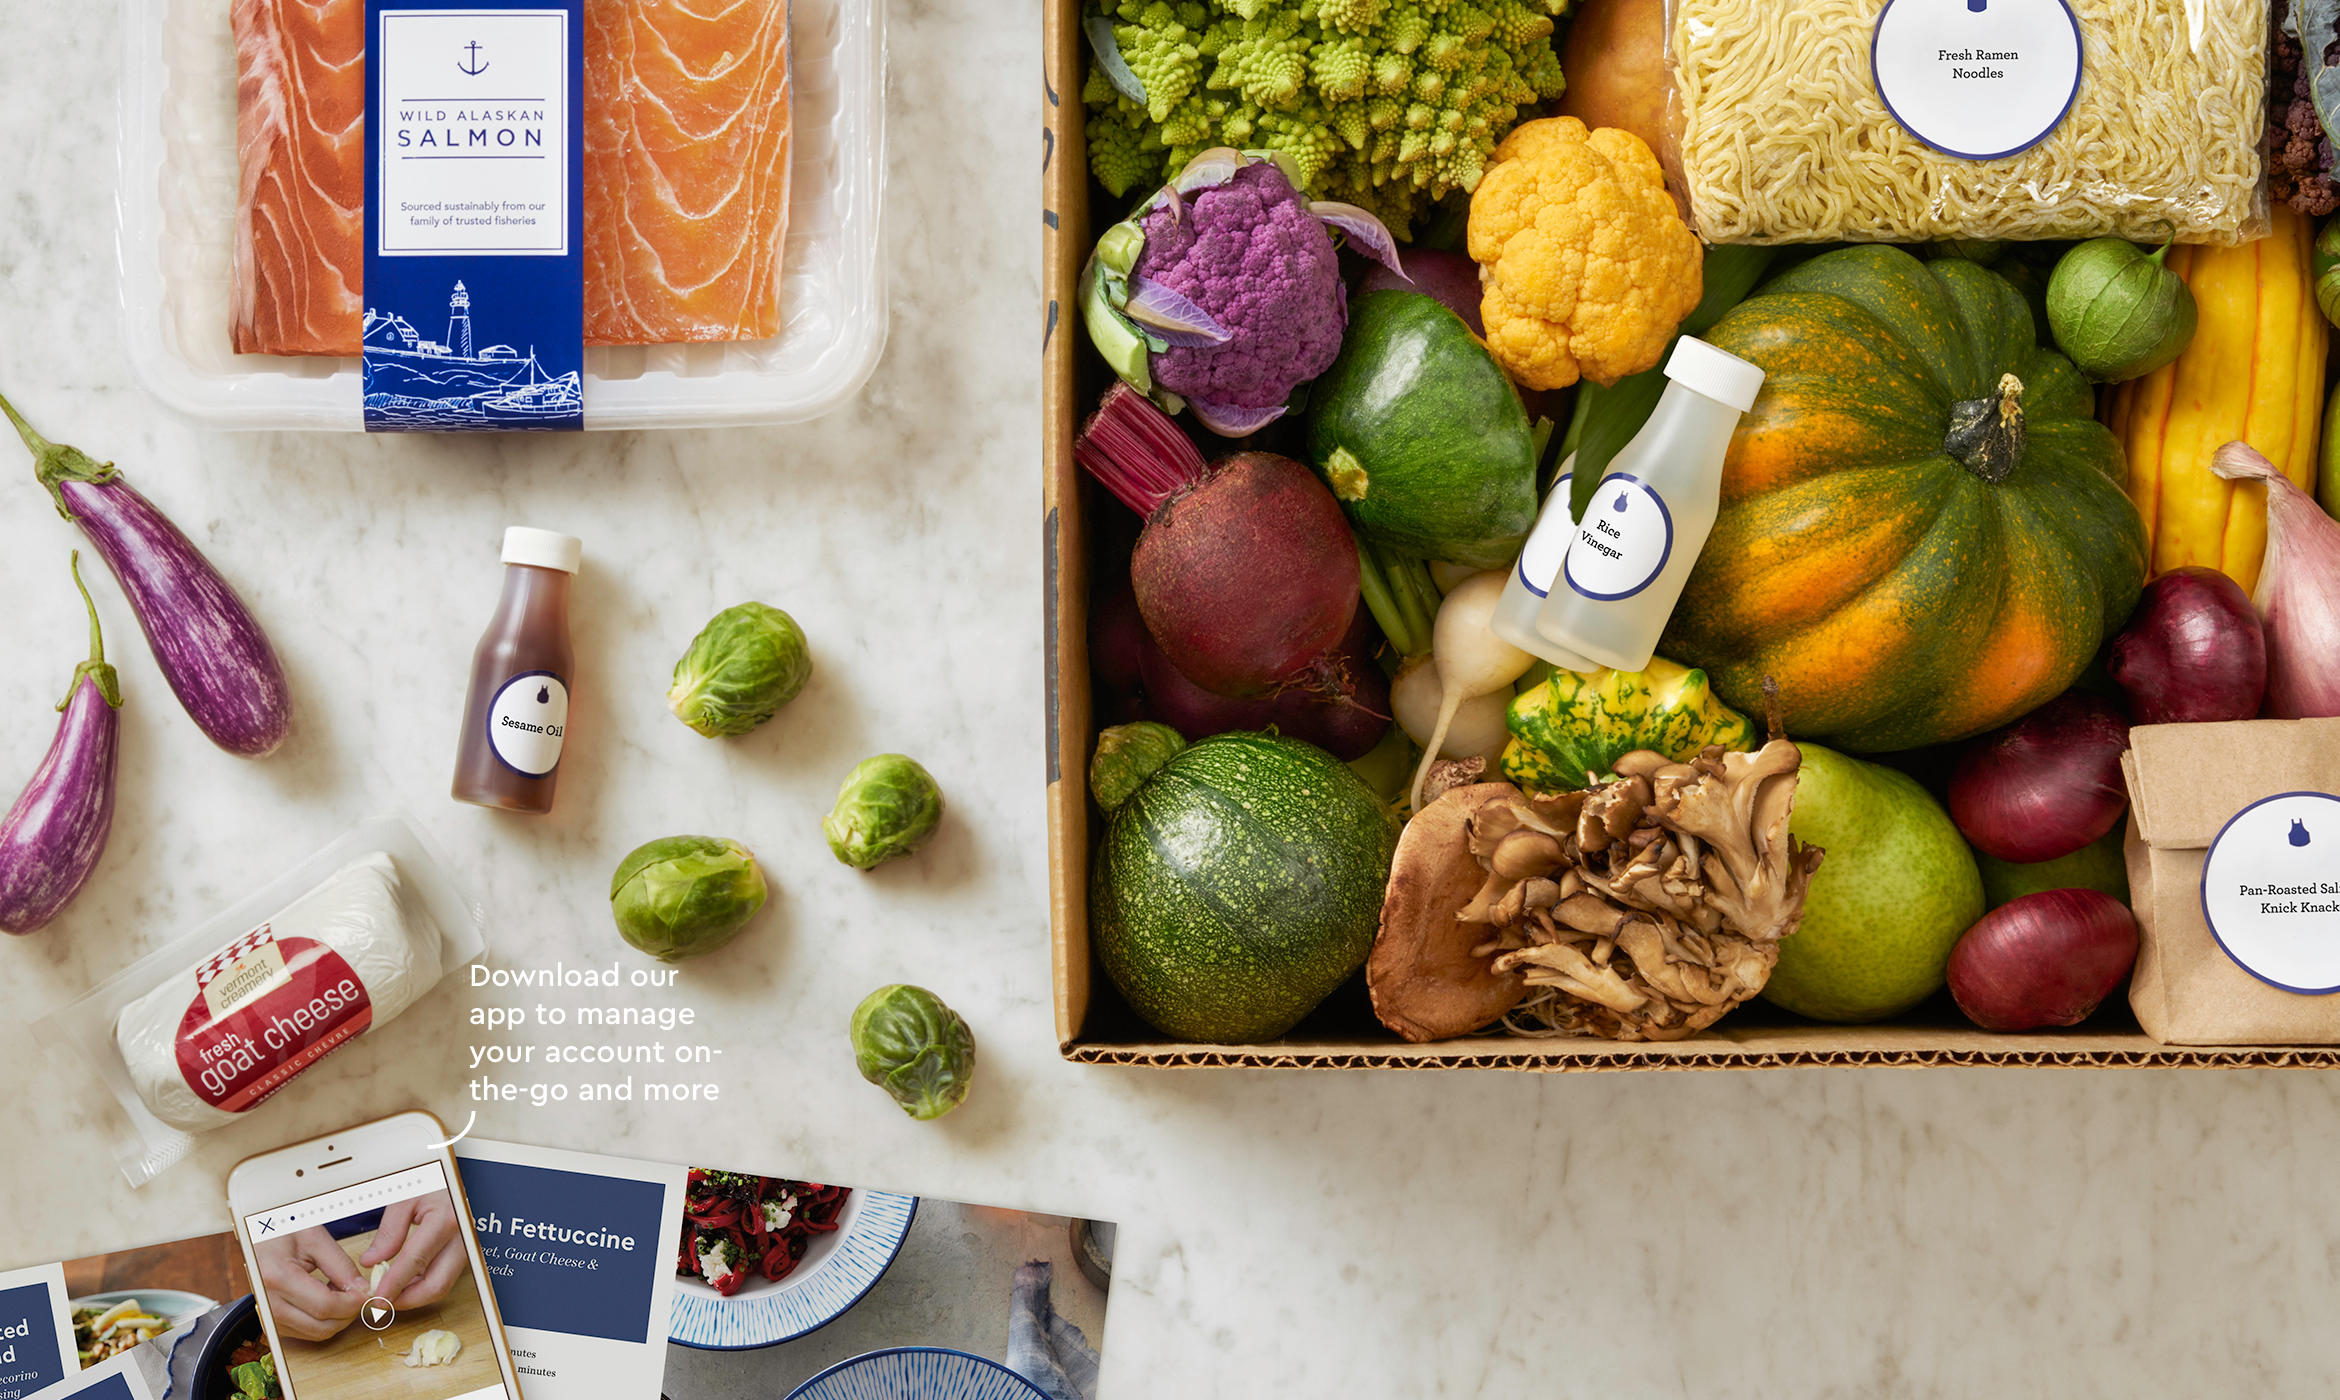 How can you get prepackaged meals at your doorstep?